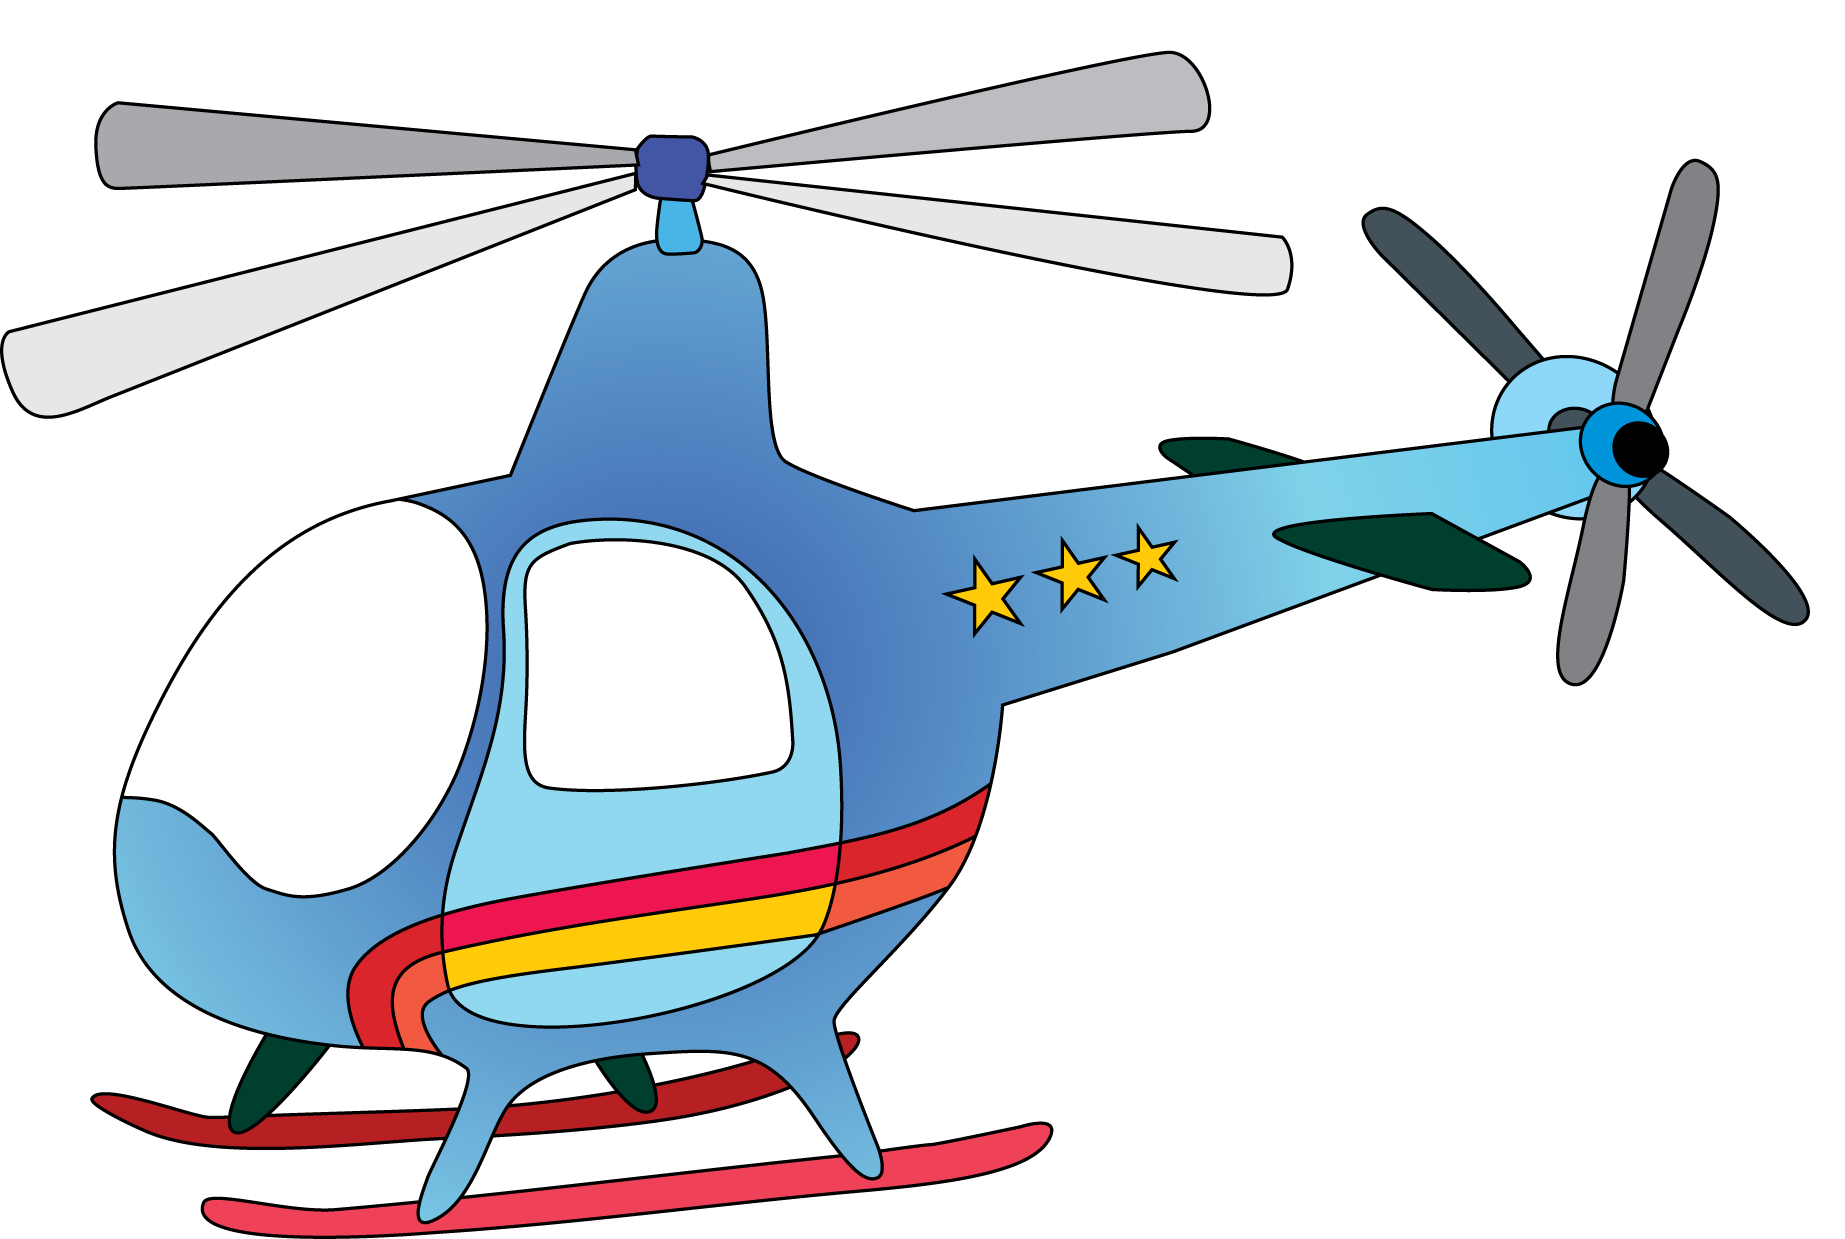 Helicopter clipart hd clipart library library Helicopter Clipart | Clipart Panda - Free Clipart Images clipart library library